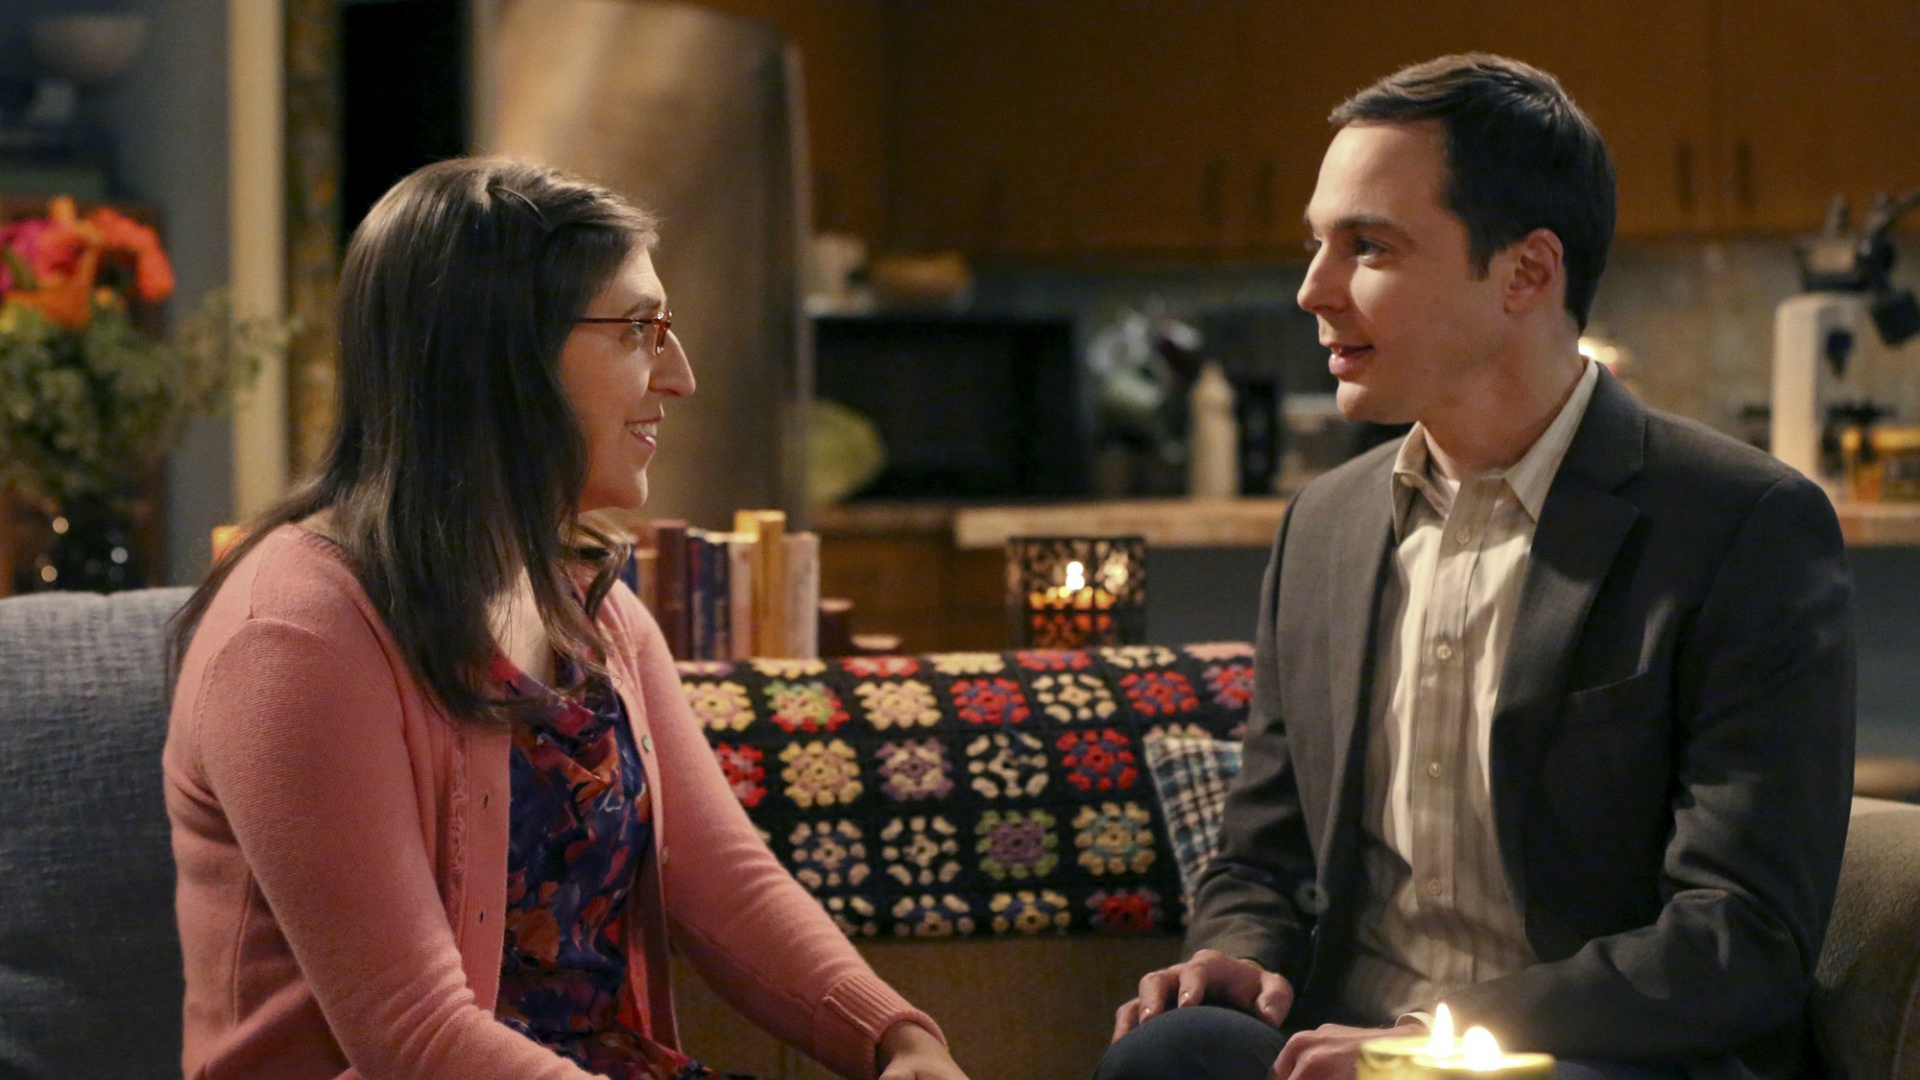 Amy and Sheldon took their relationship to the next level on The Big Bang Theory.